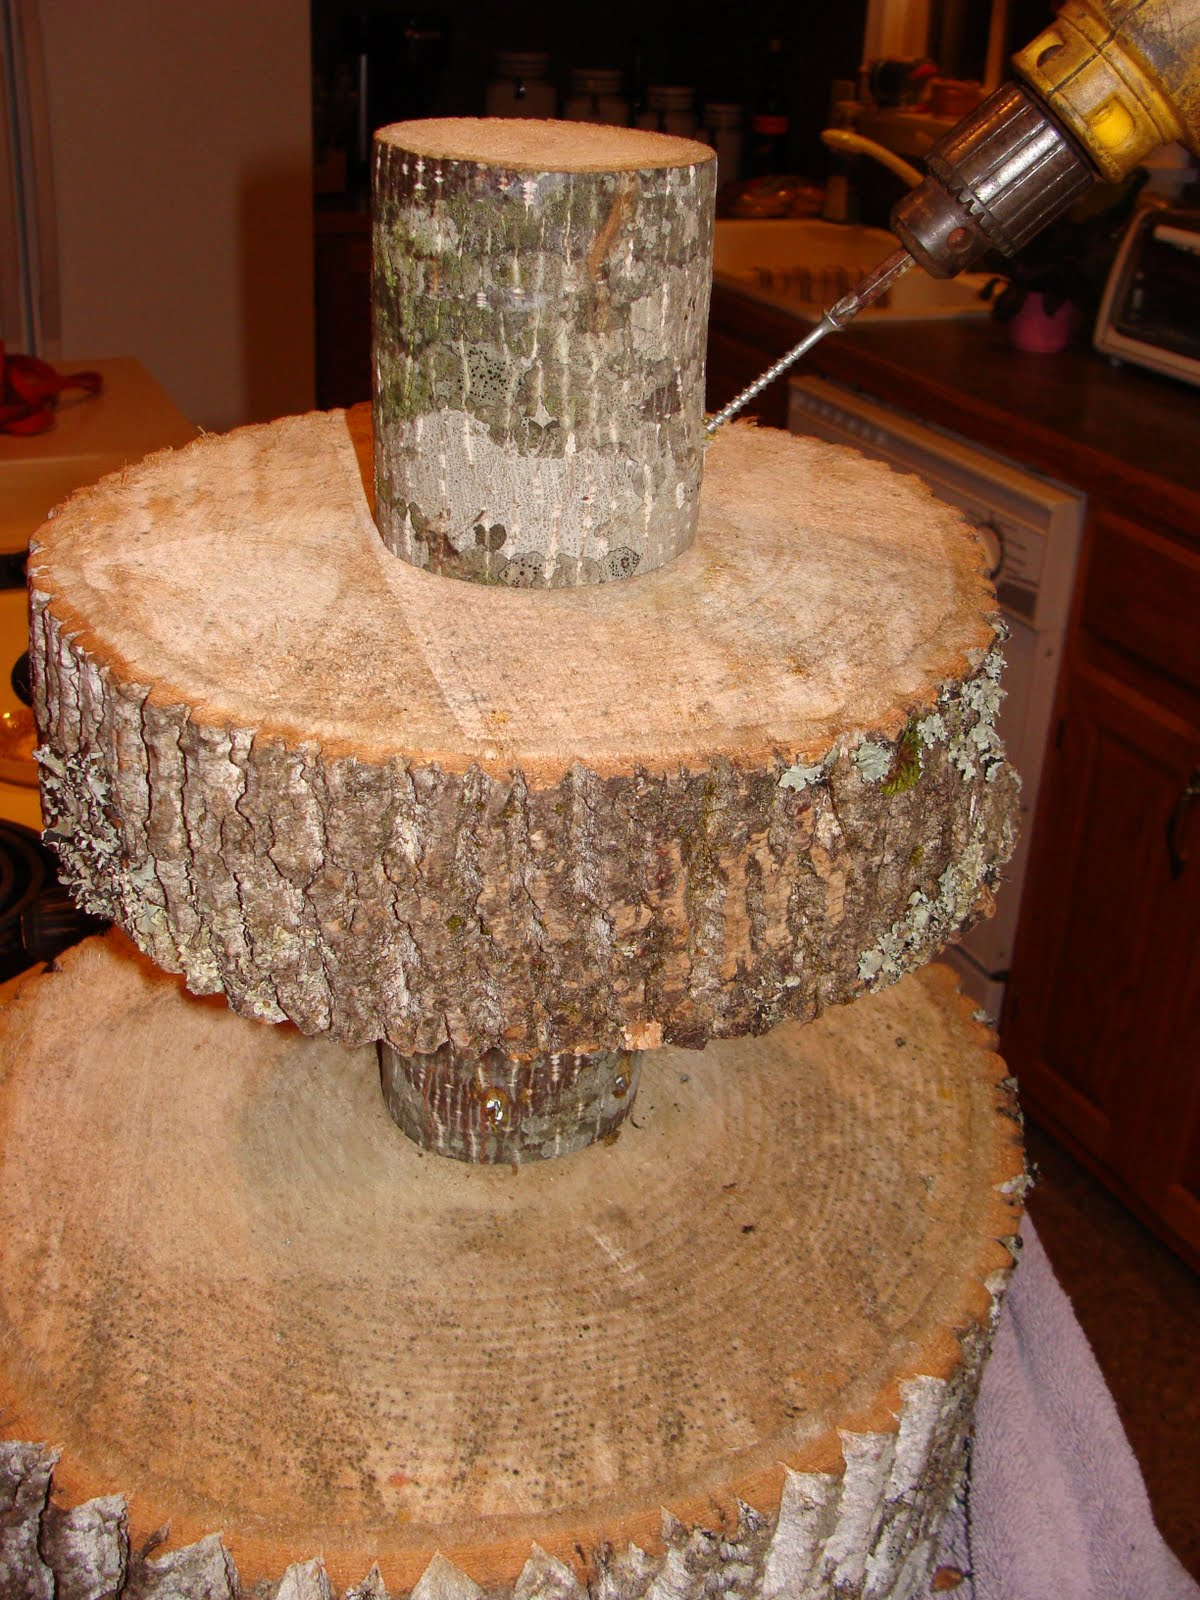 guest project throw a rustic wedding make a diy tree cupcake stand tutorial my blog. Black Bedroom Furniture Sets. Home Design Ideas